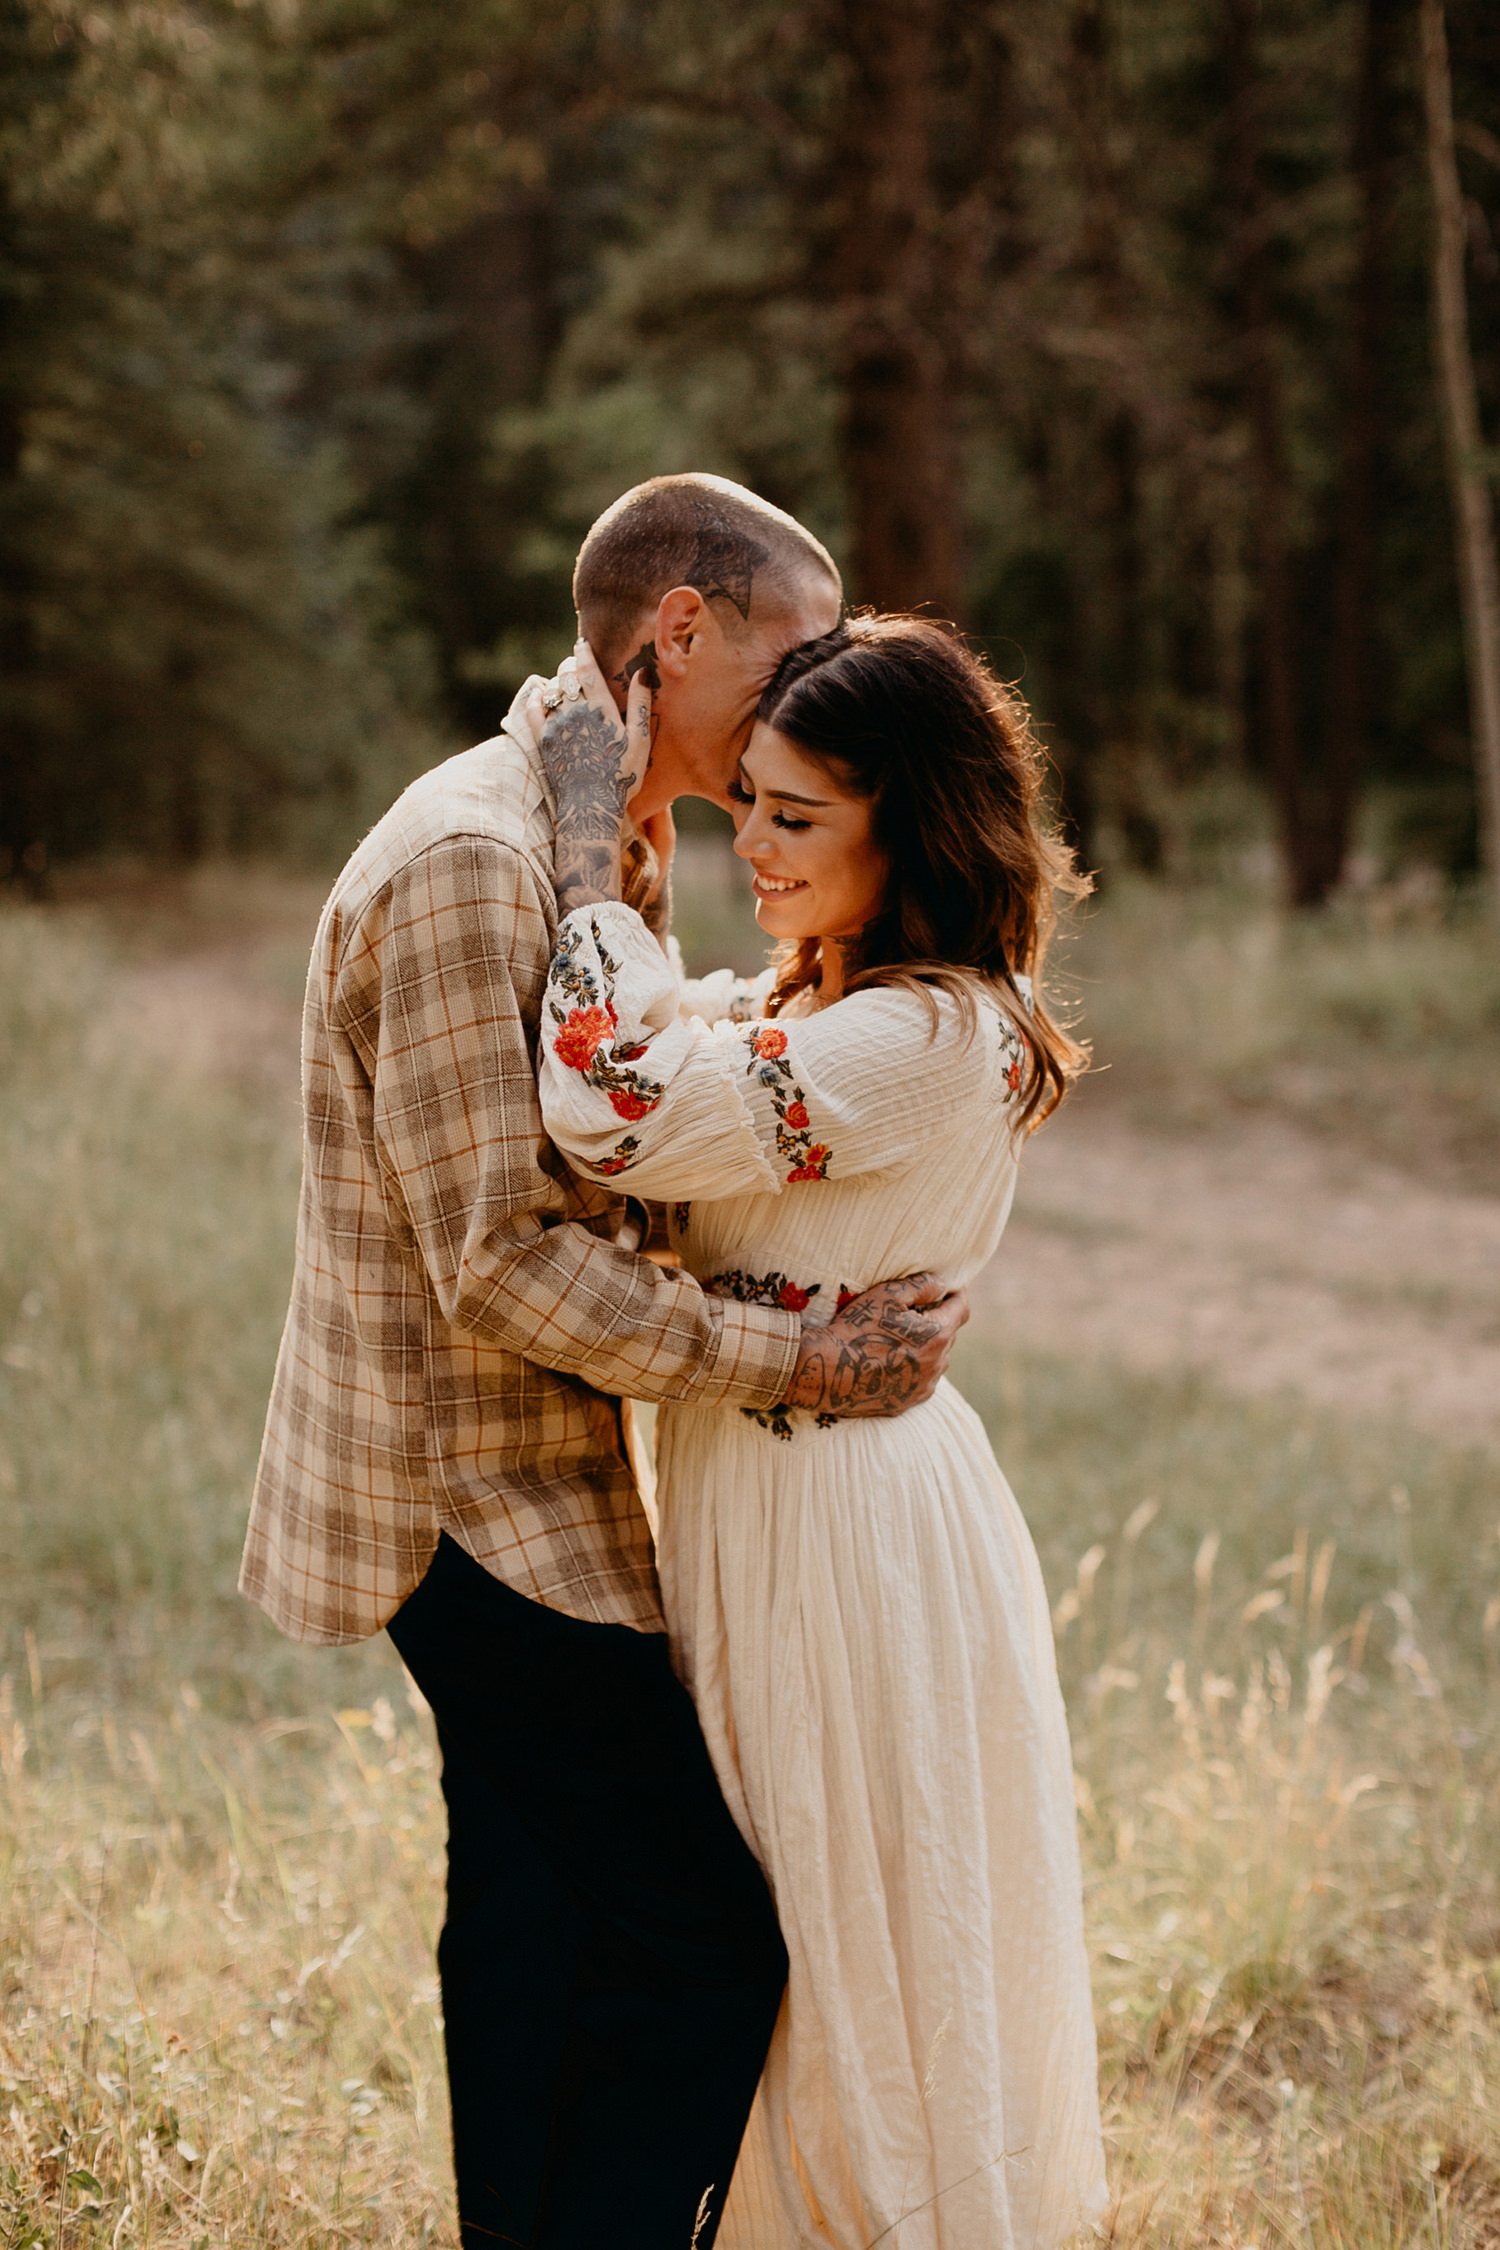 Bailey Colorado Denver Wedding Engagement Photographer Liz Osban Cheyenne Wyoming Mountain Elopement Boho bohemian vintage film tattoo non traditional tattooed rock and roll 29.jpg